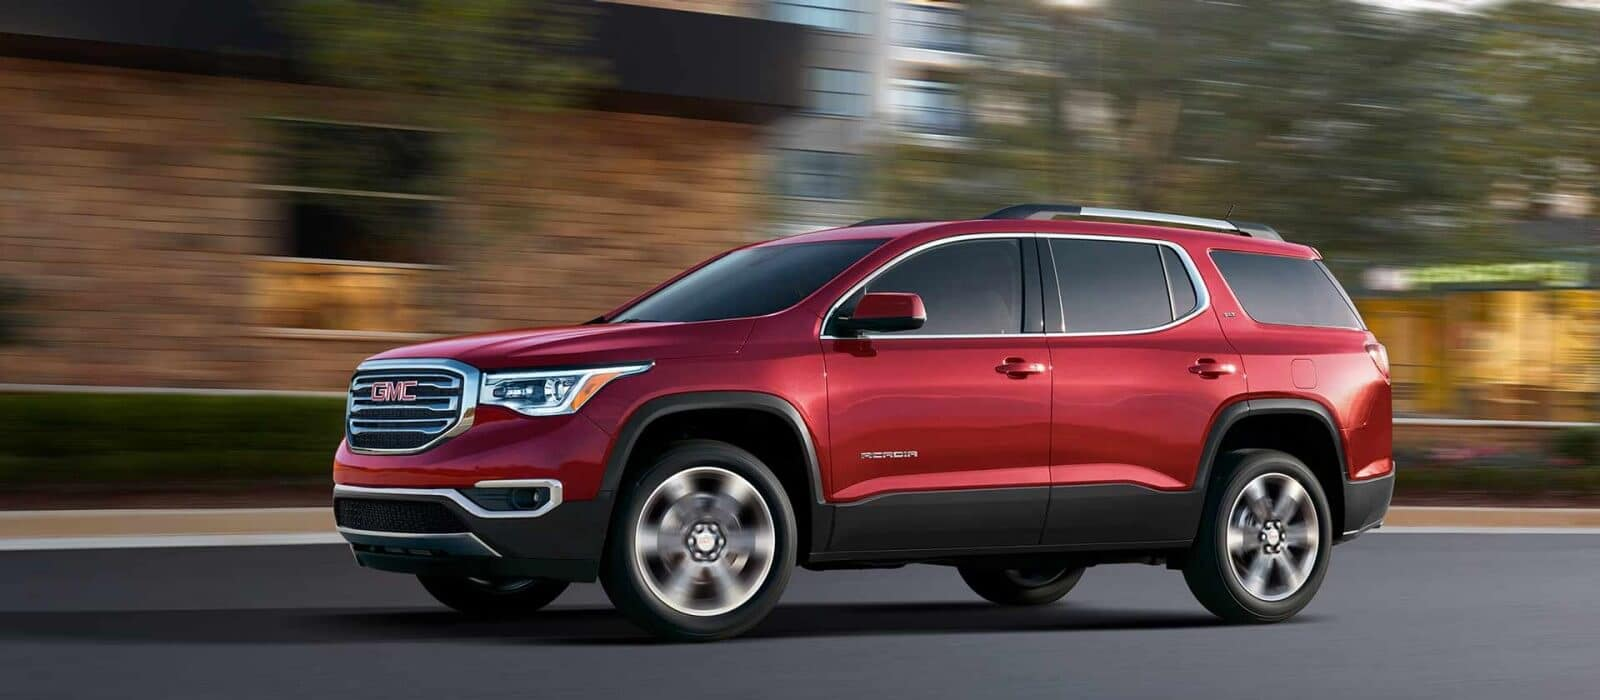 specials lease buick coral new springs gmc terrain